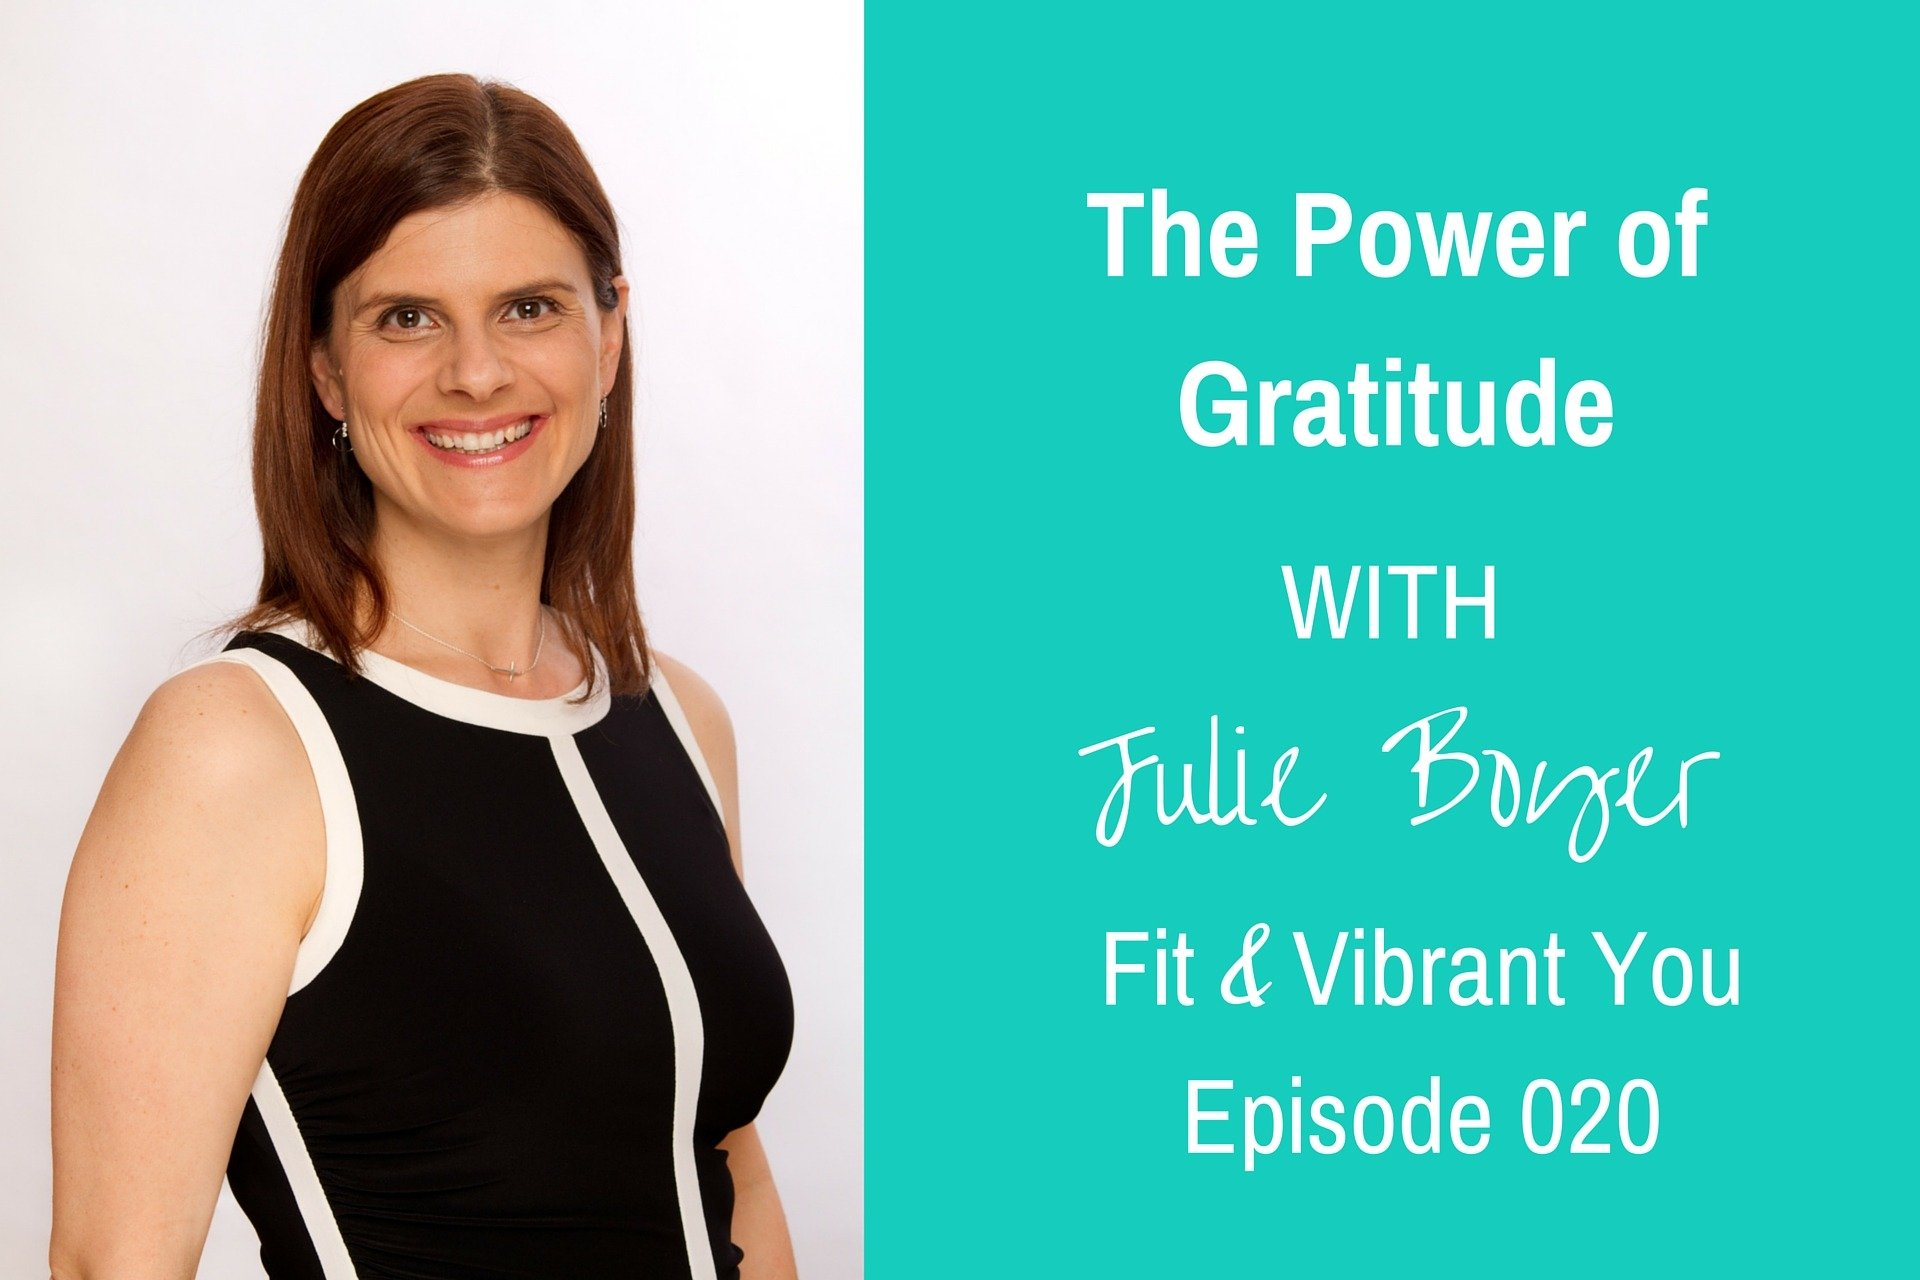 FVY 020: The Power of Gratitude with Julie Boyer